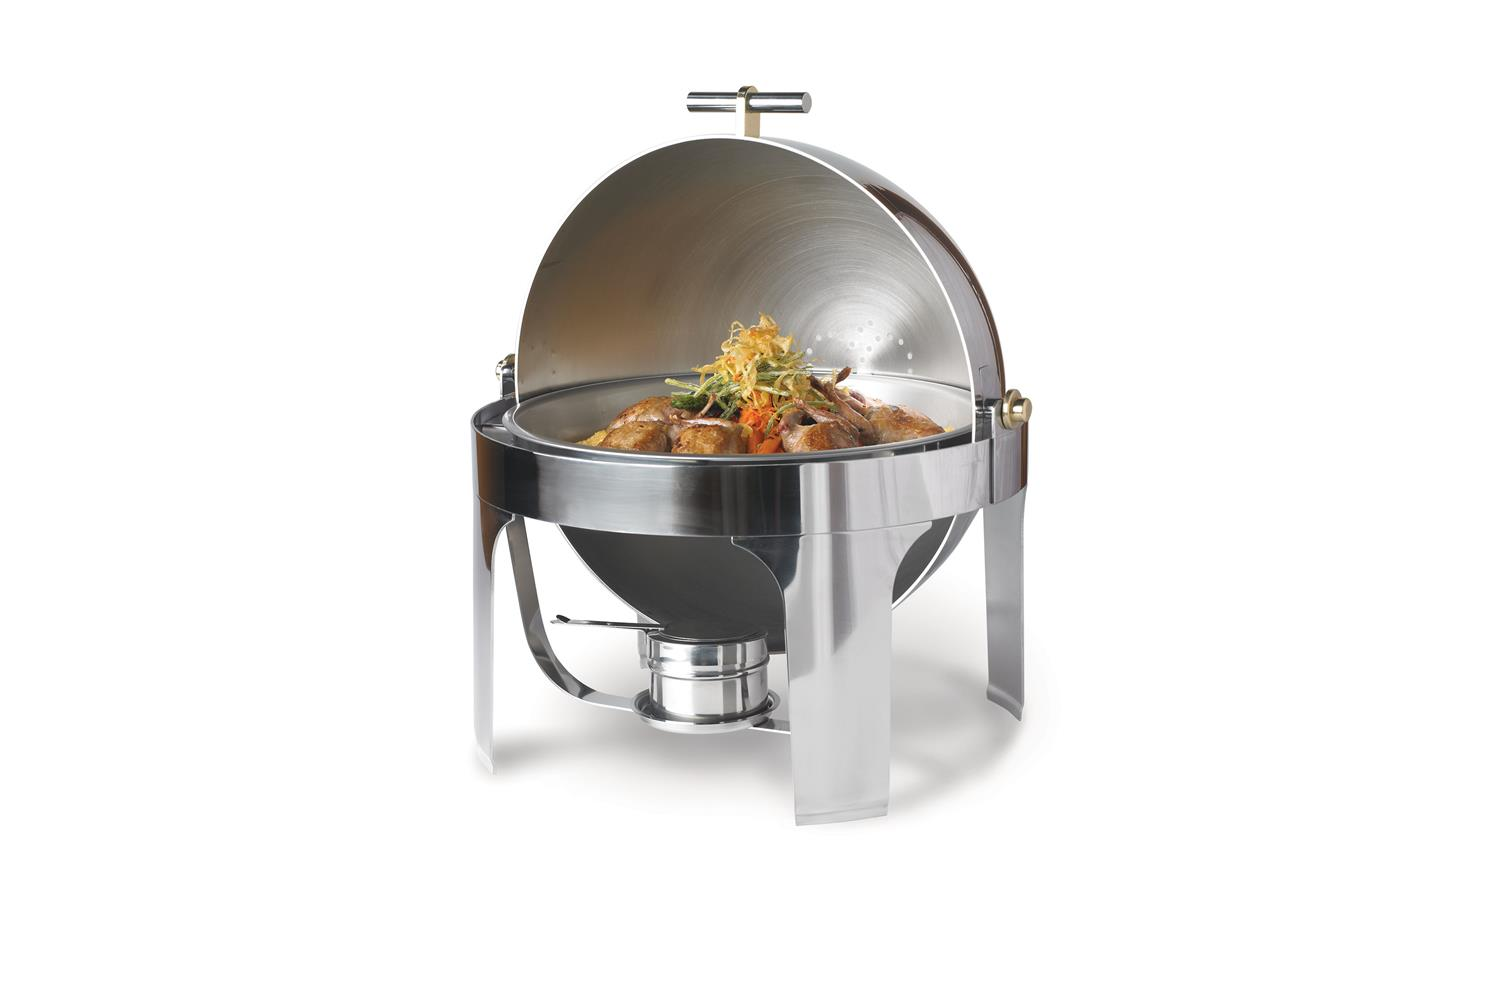 Vollrath 48765 New York, New York Dripless Countertop Chafer, Silverpate